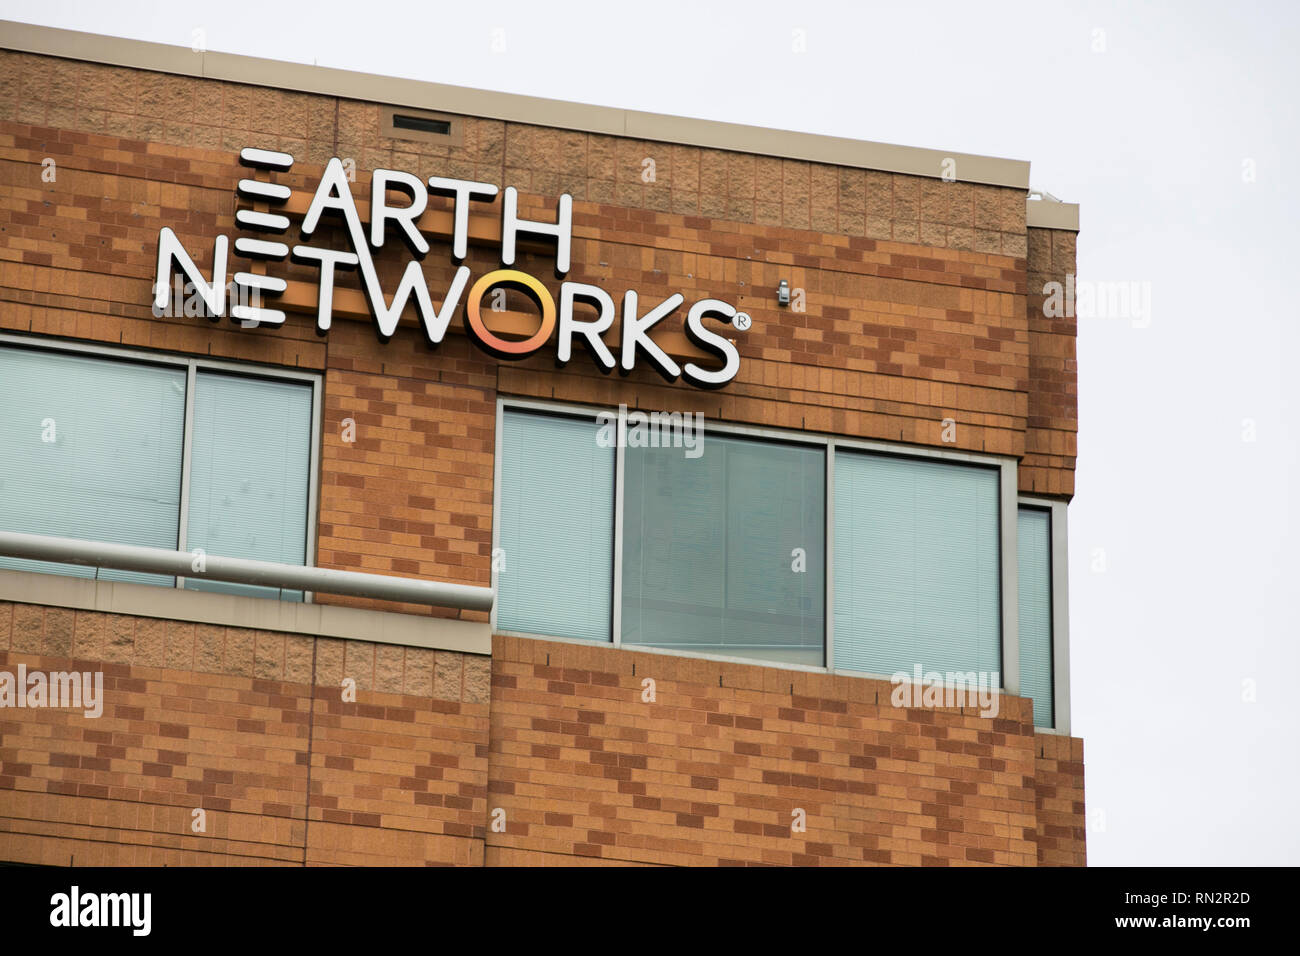 A logo sign outside of the headquarters of Earth Networks in Germantown, Maryland on February 10, 2019. - Stock Image